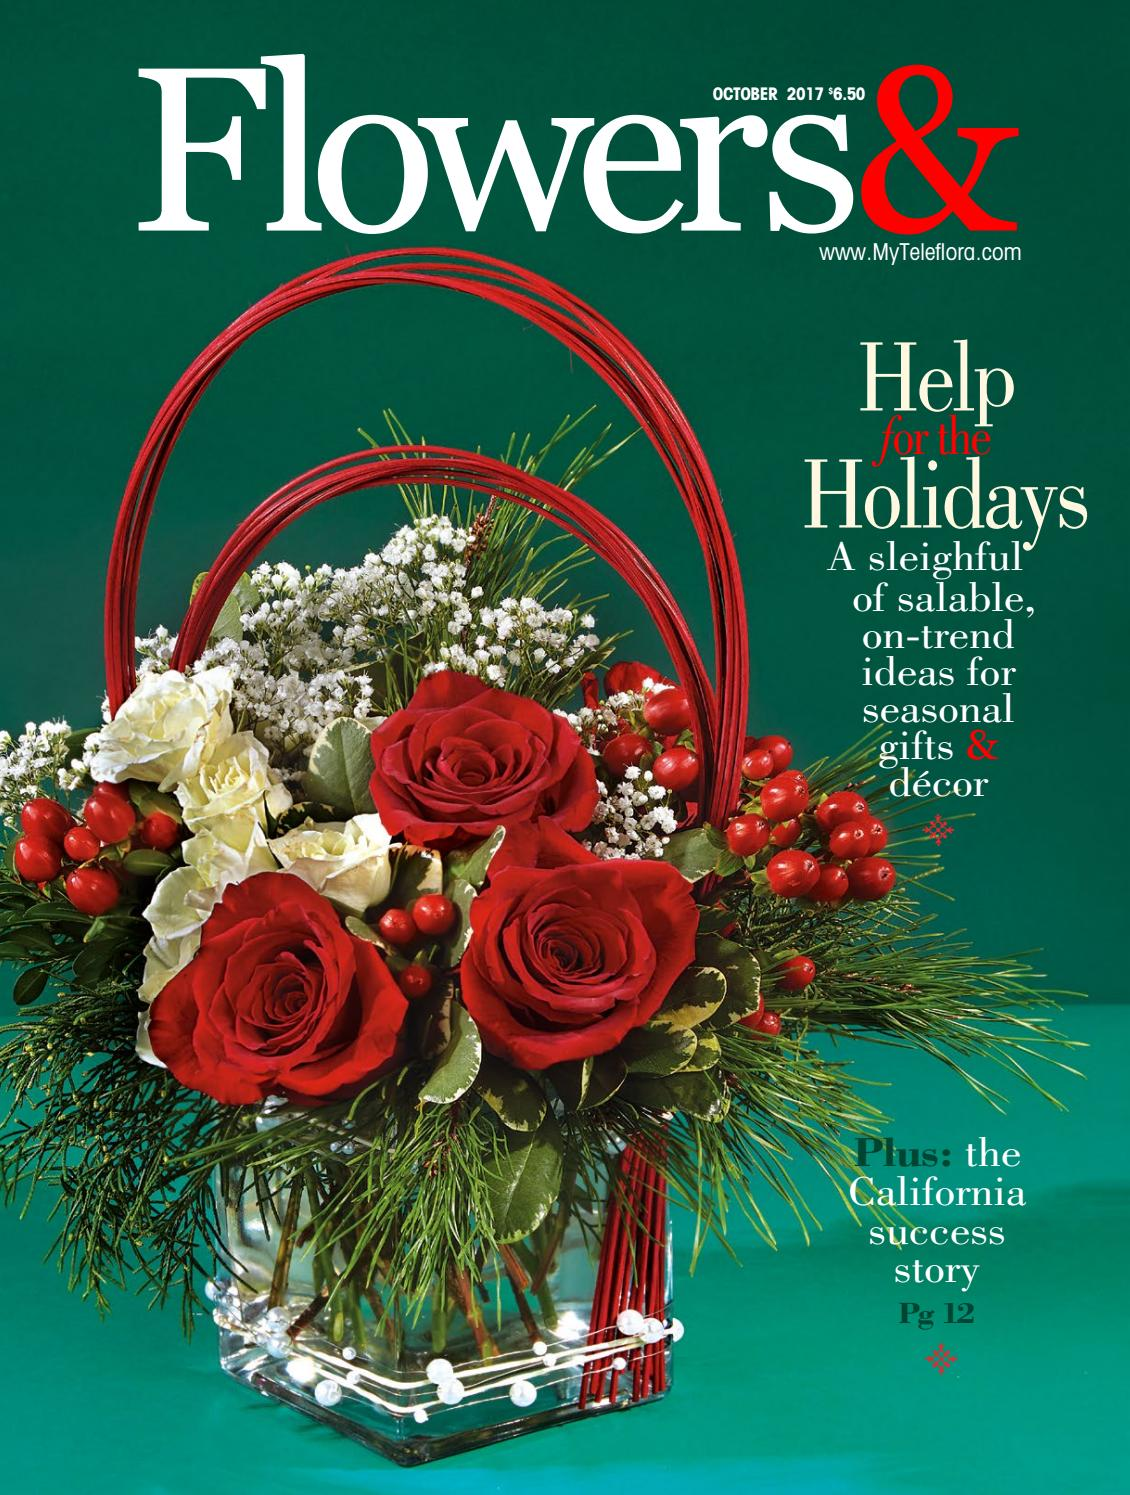 ideas for flower vase fillers with natural green flower.htm flowers  october 2017 by teleflora issuu  flowers  october 2017 by teleflora